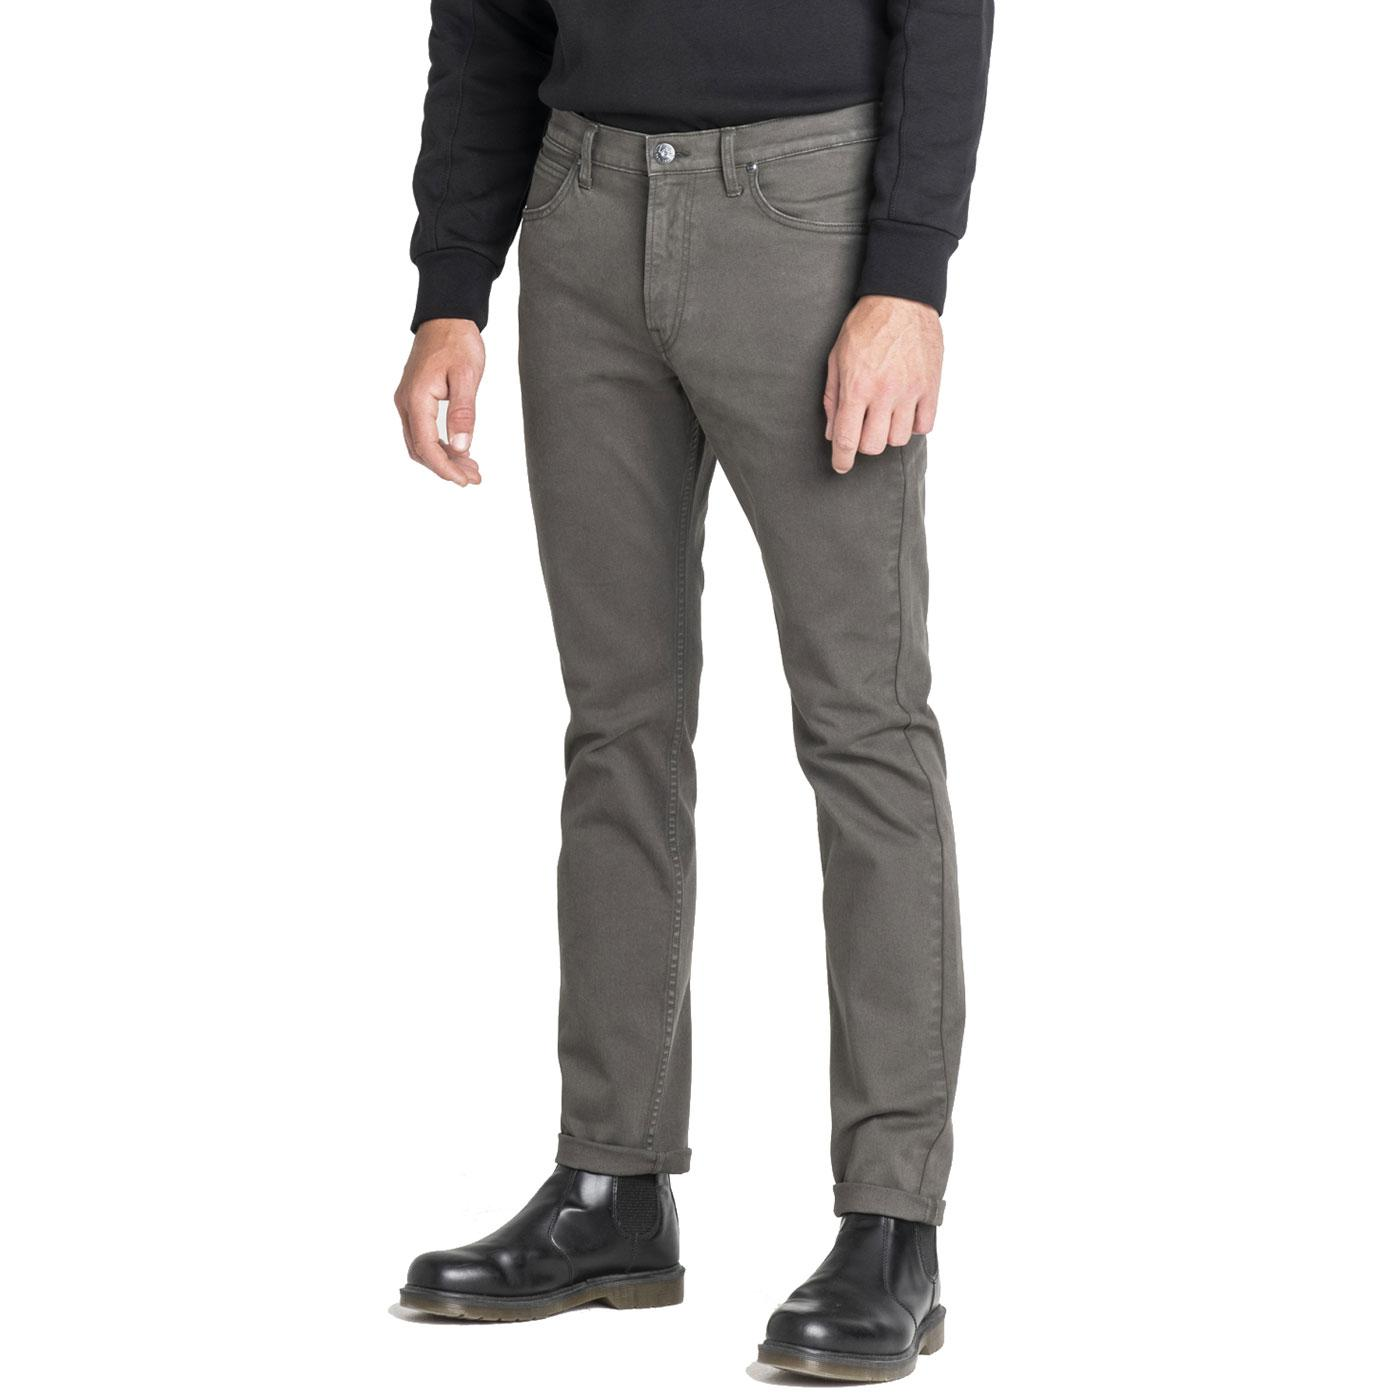 Rider LEE JEANS Slim Leg Twill Jeans Forest Night